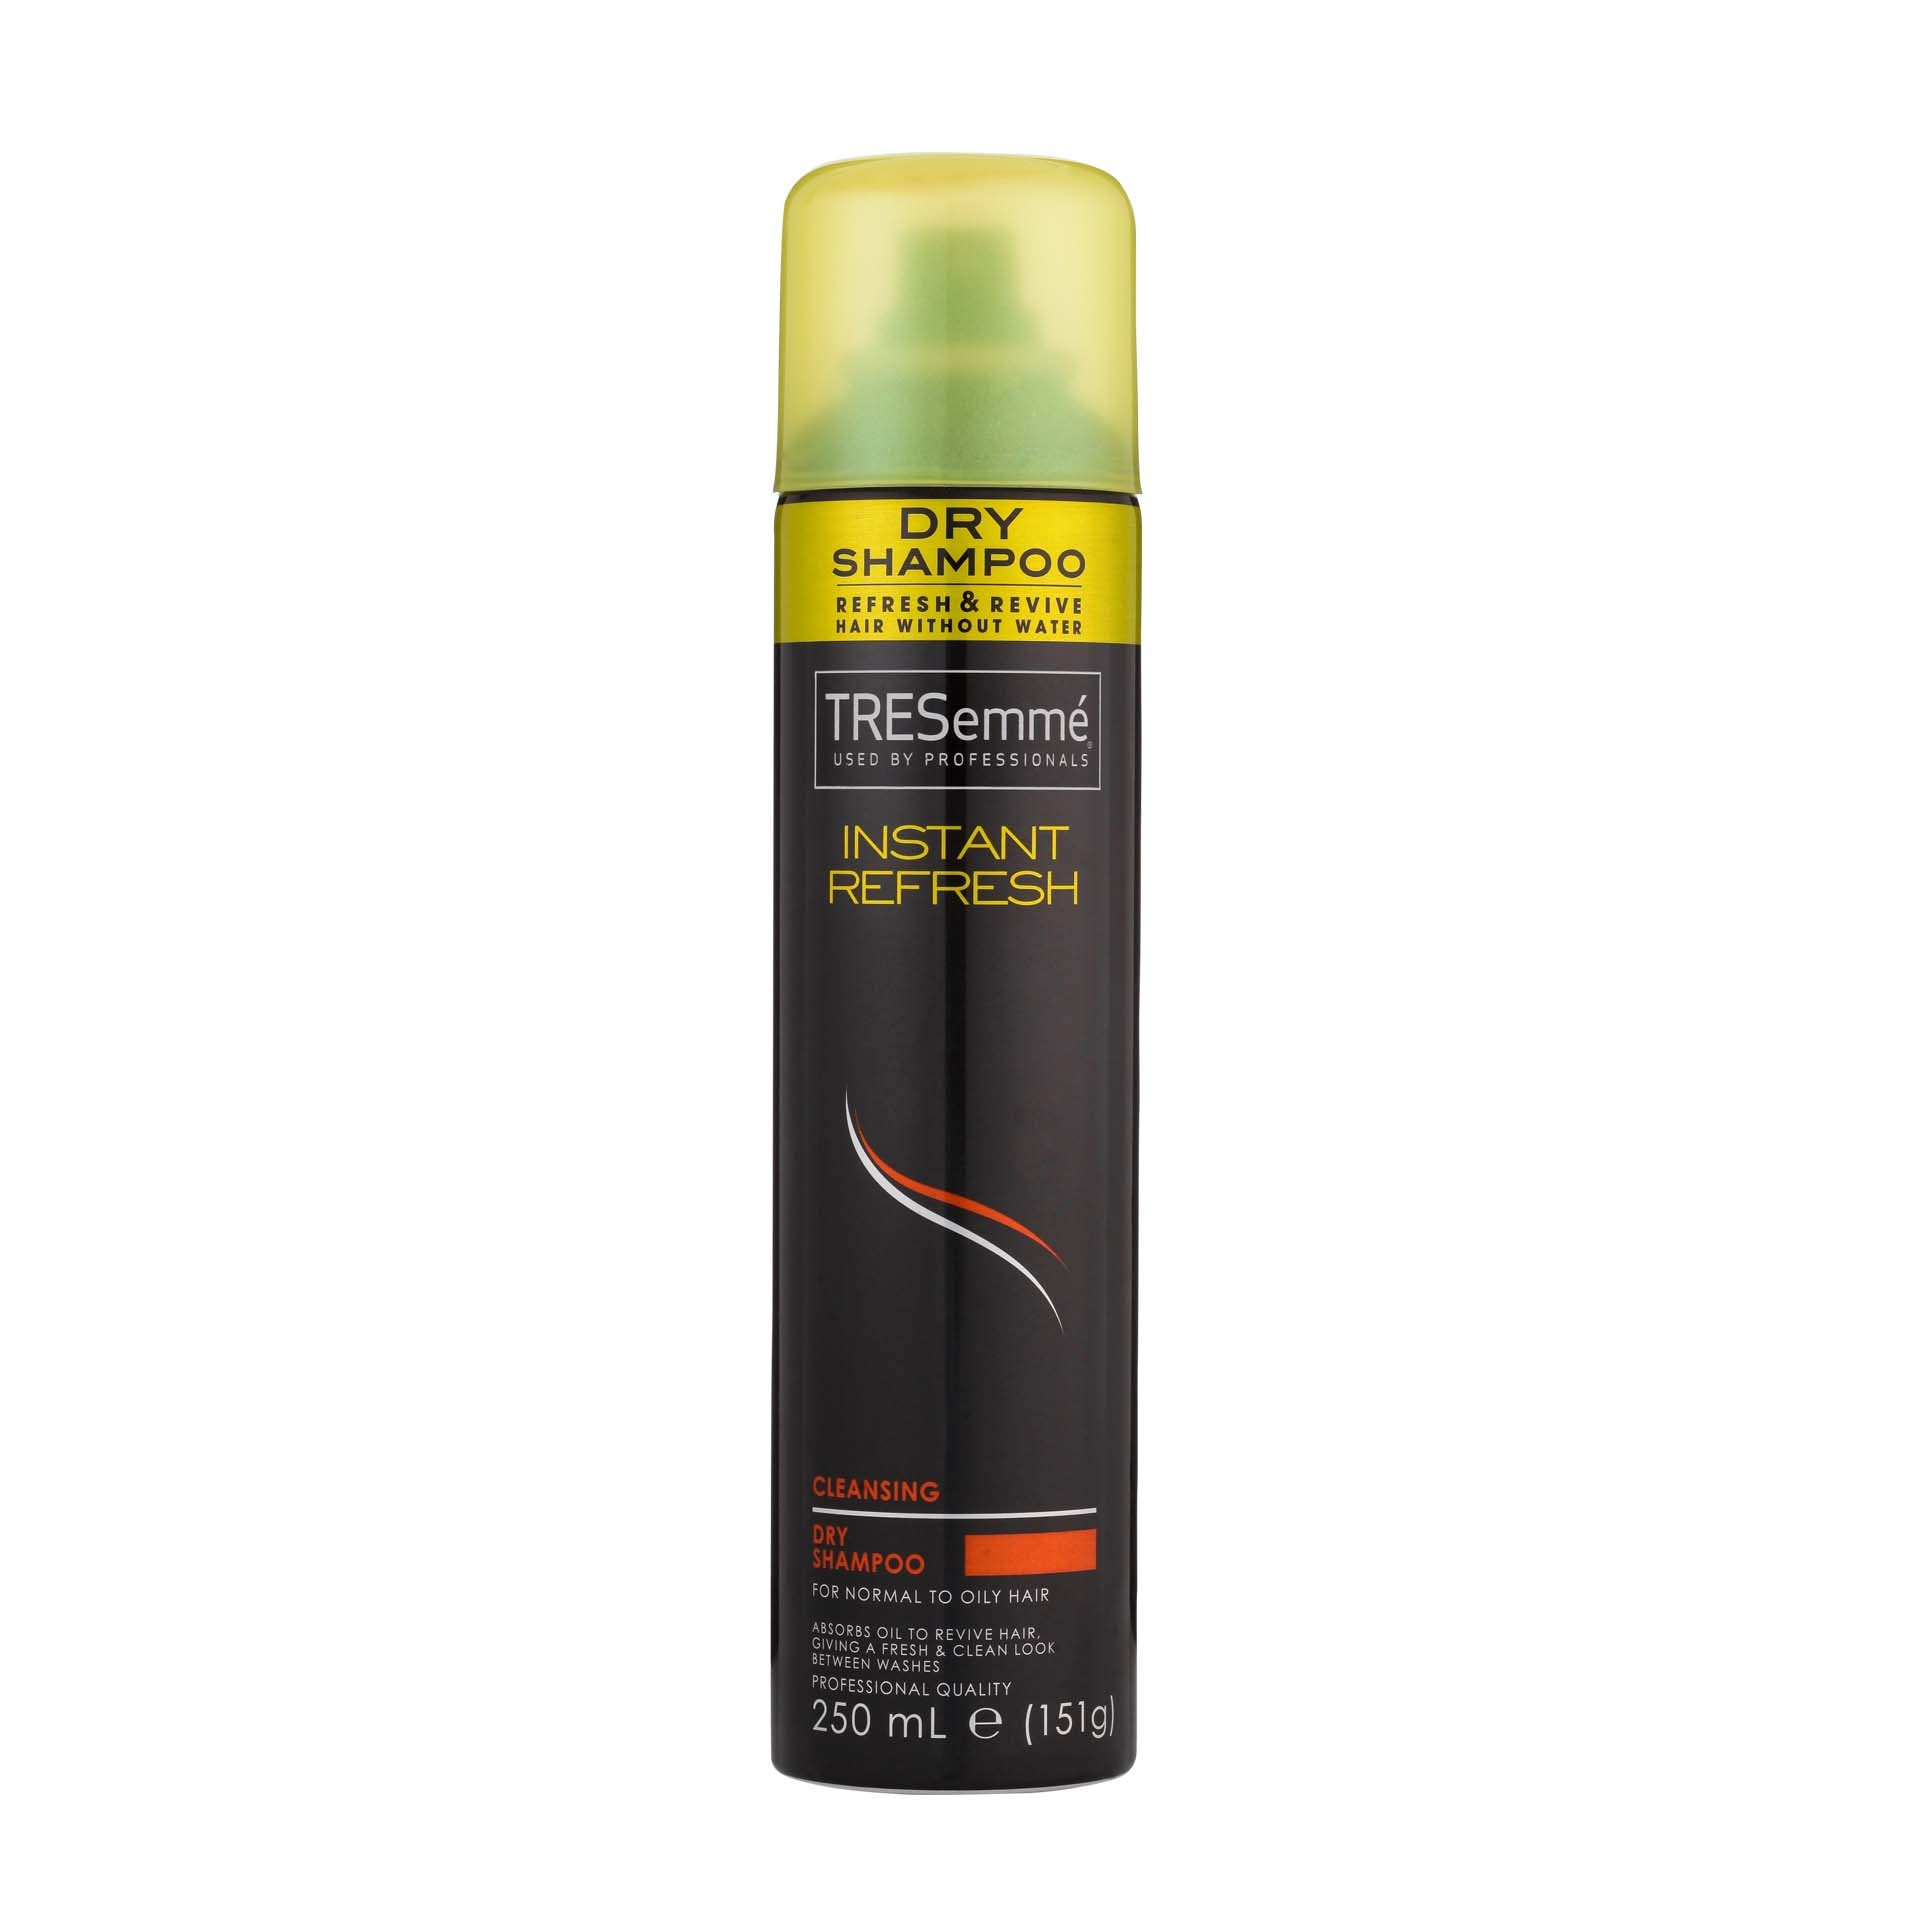 TRESemmé Instant Refresh Cleansing Dry Shampoo